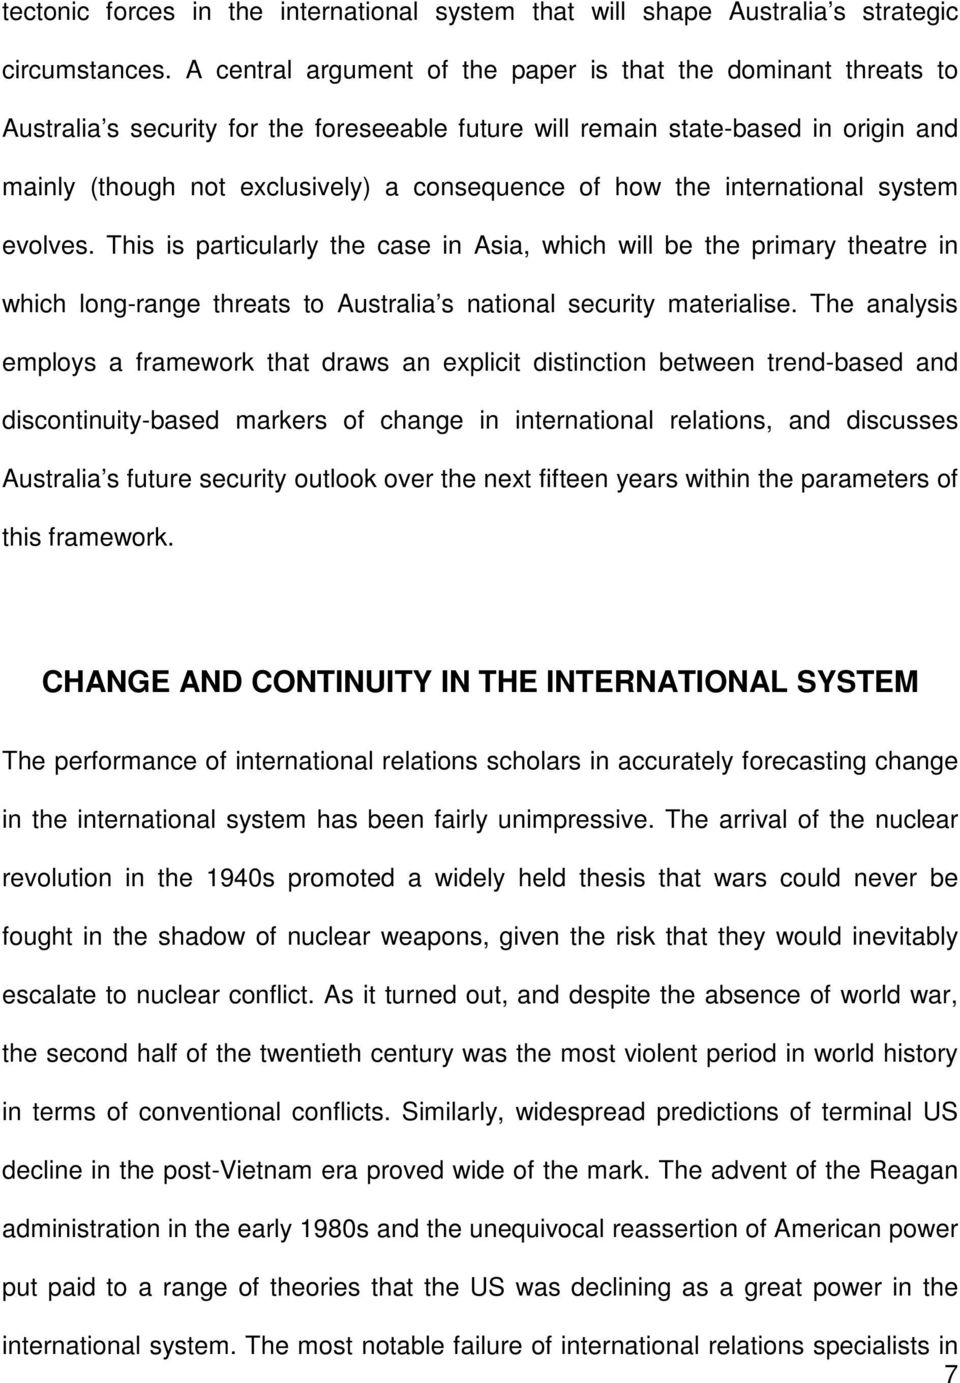 how the international system evolves. This is particularly the case in Asia, which will be the primary theatre in which long-range threats to Australia s national security materialise.